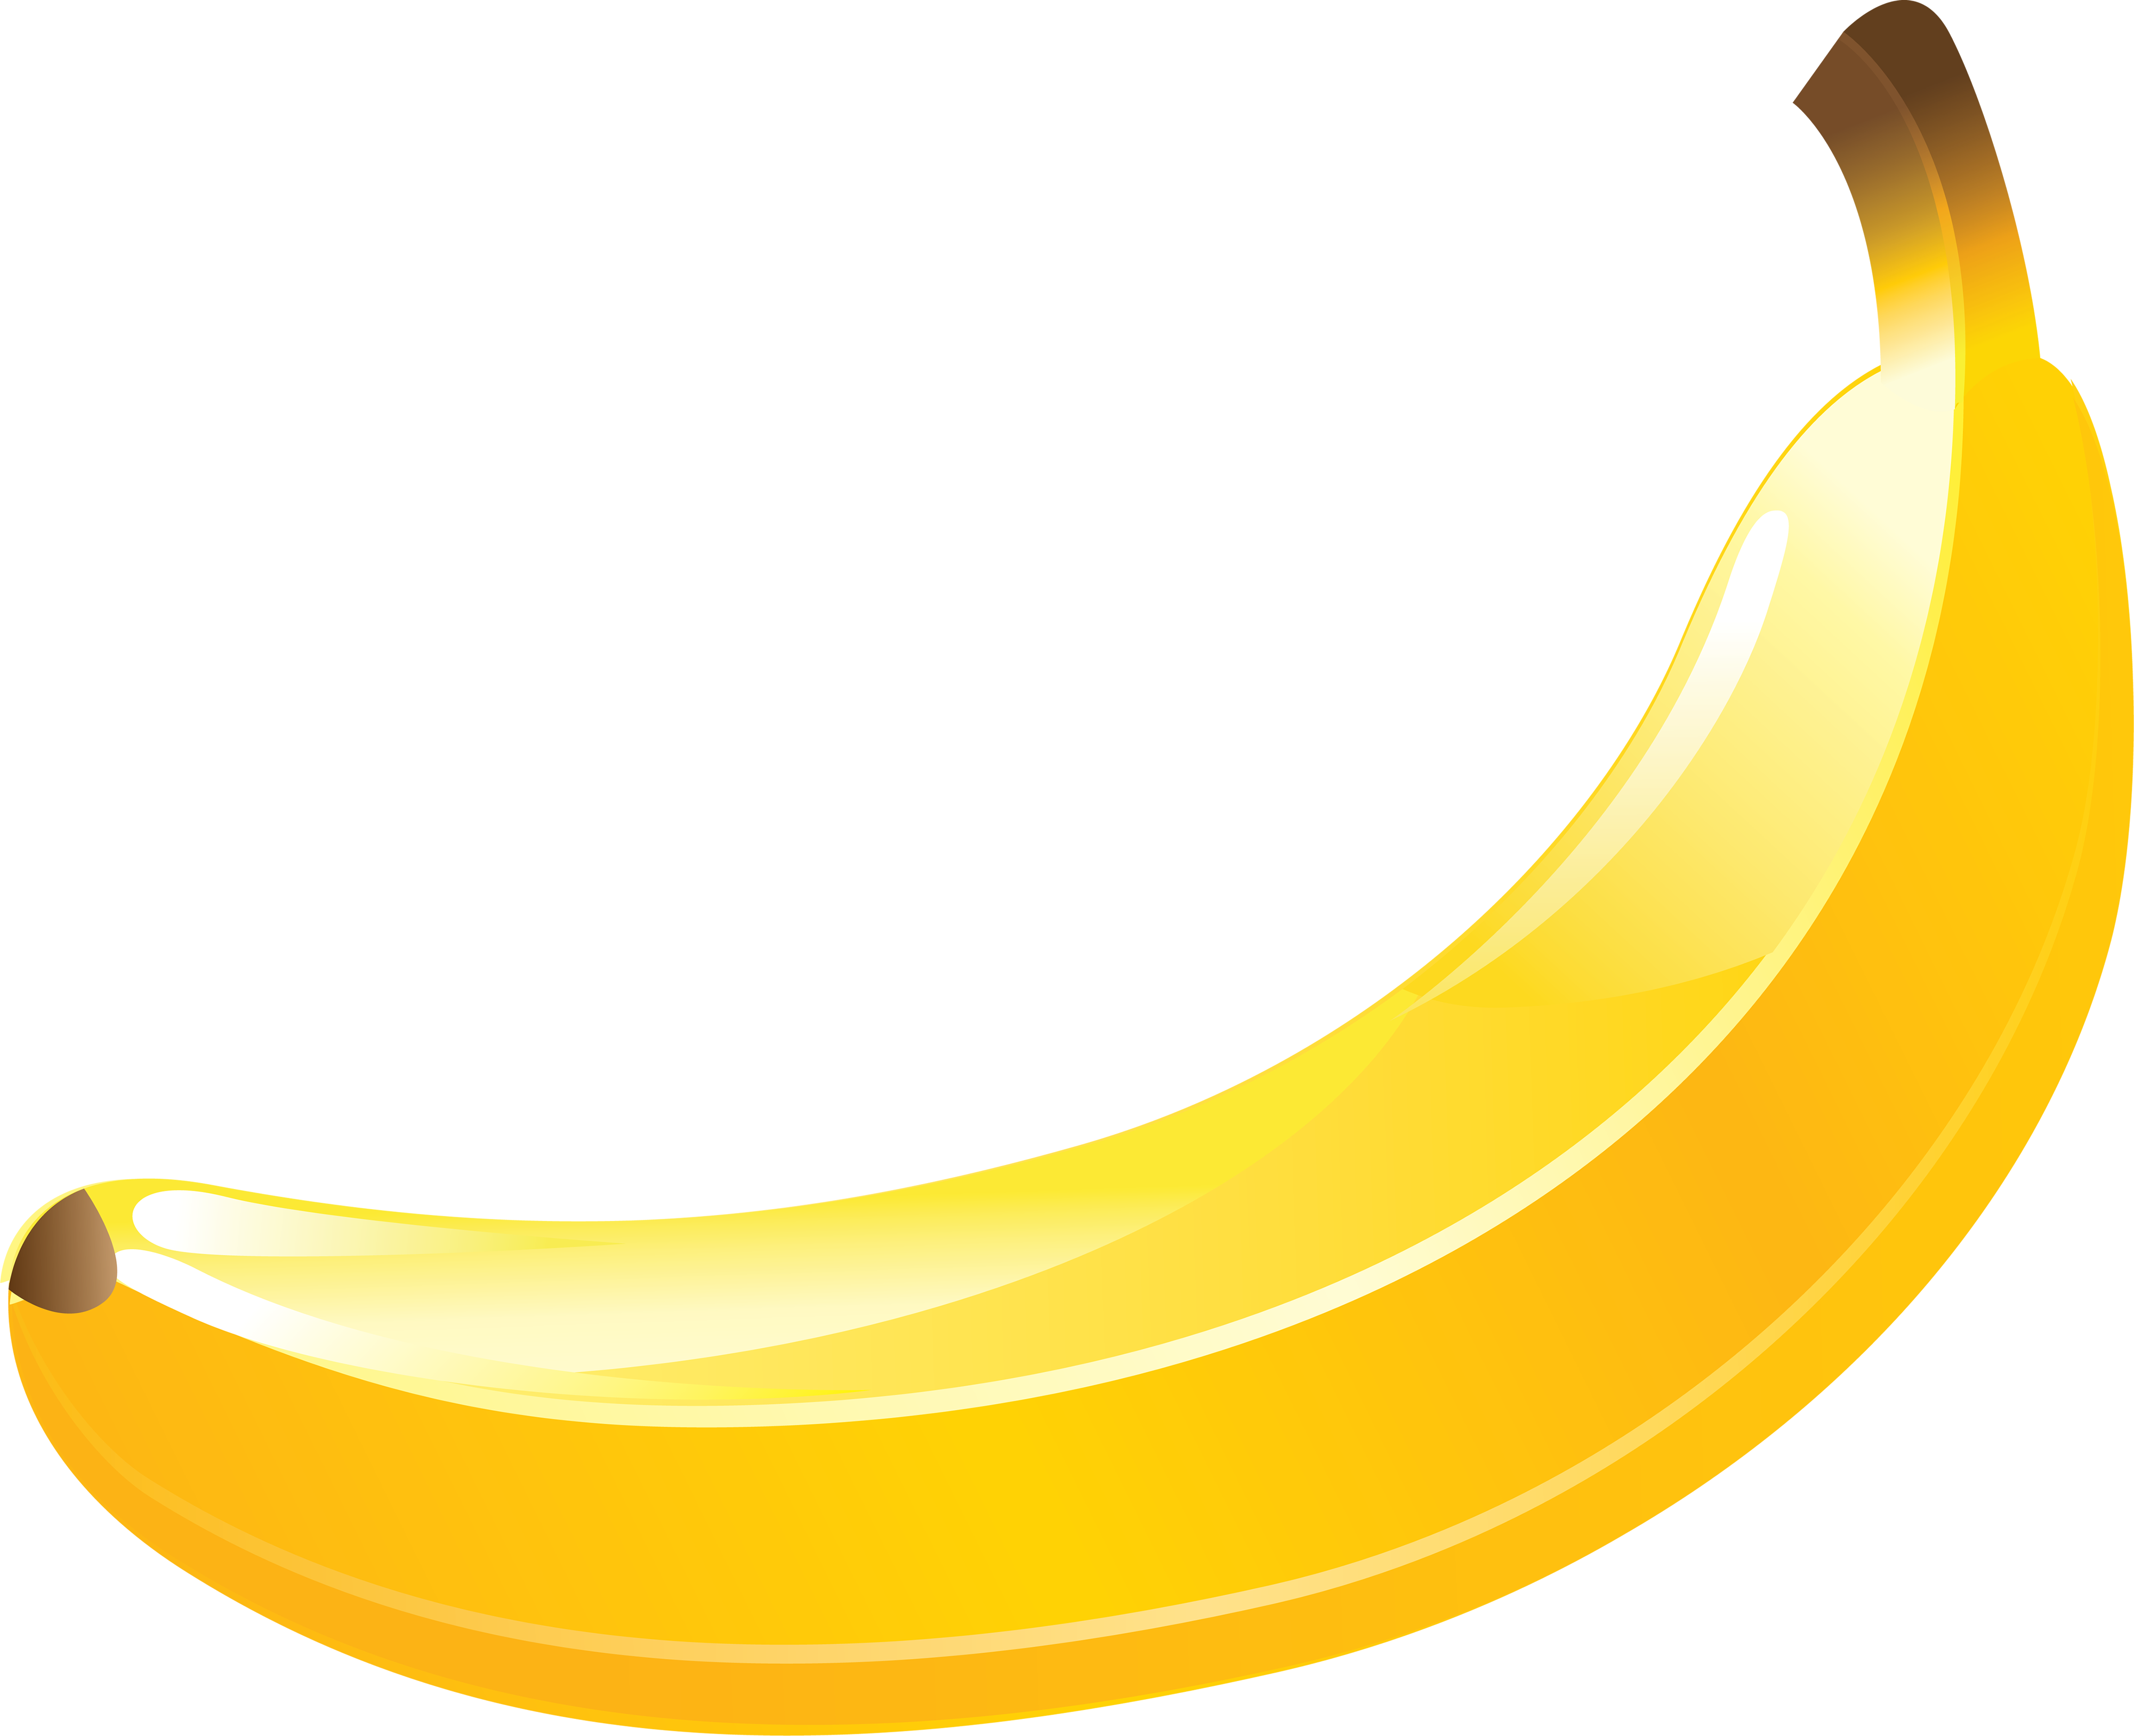 Banana cartoon png. Image free picture downloads